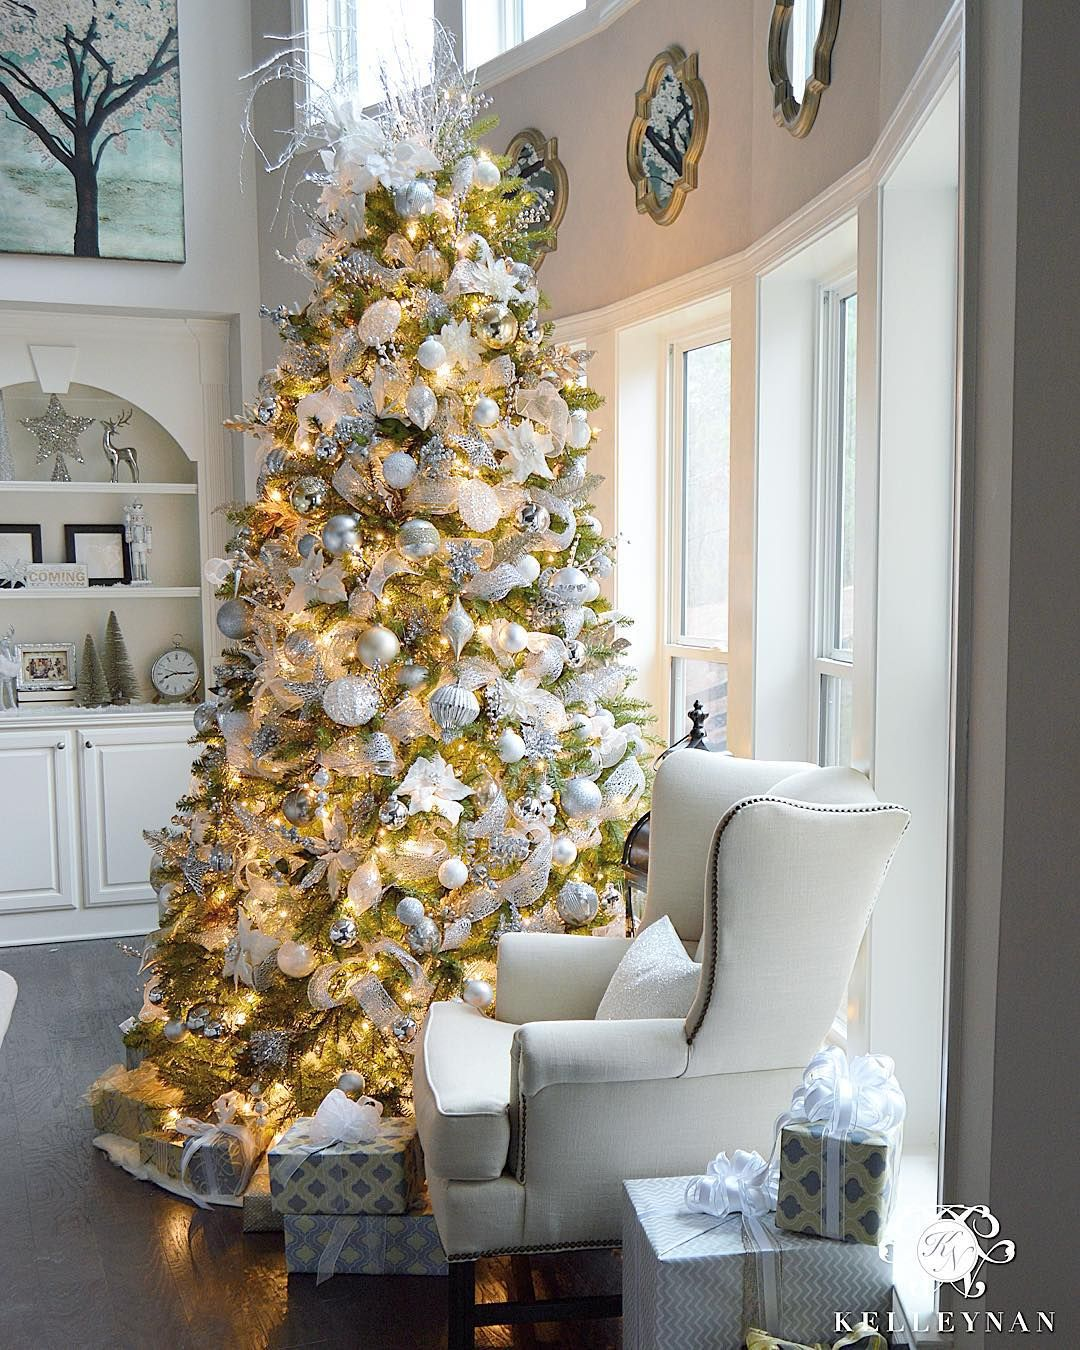 9 foot white gold and silver christmas tree filled with ornaments in two story great room in front of bow of windows check out all the silver and gold - White And Gold Christmas Decorations